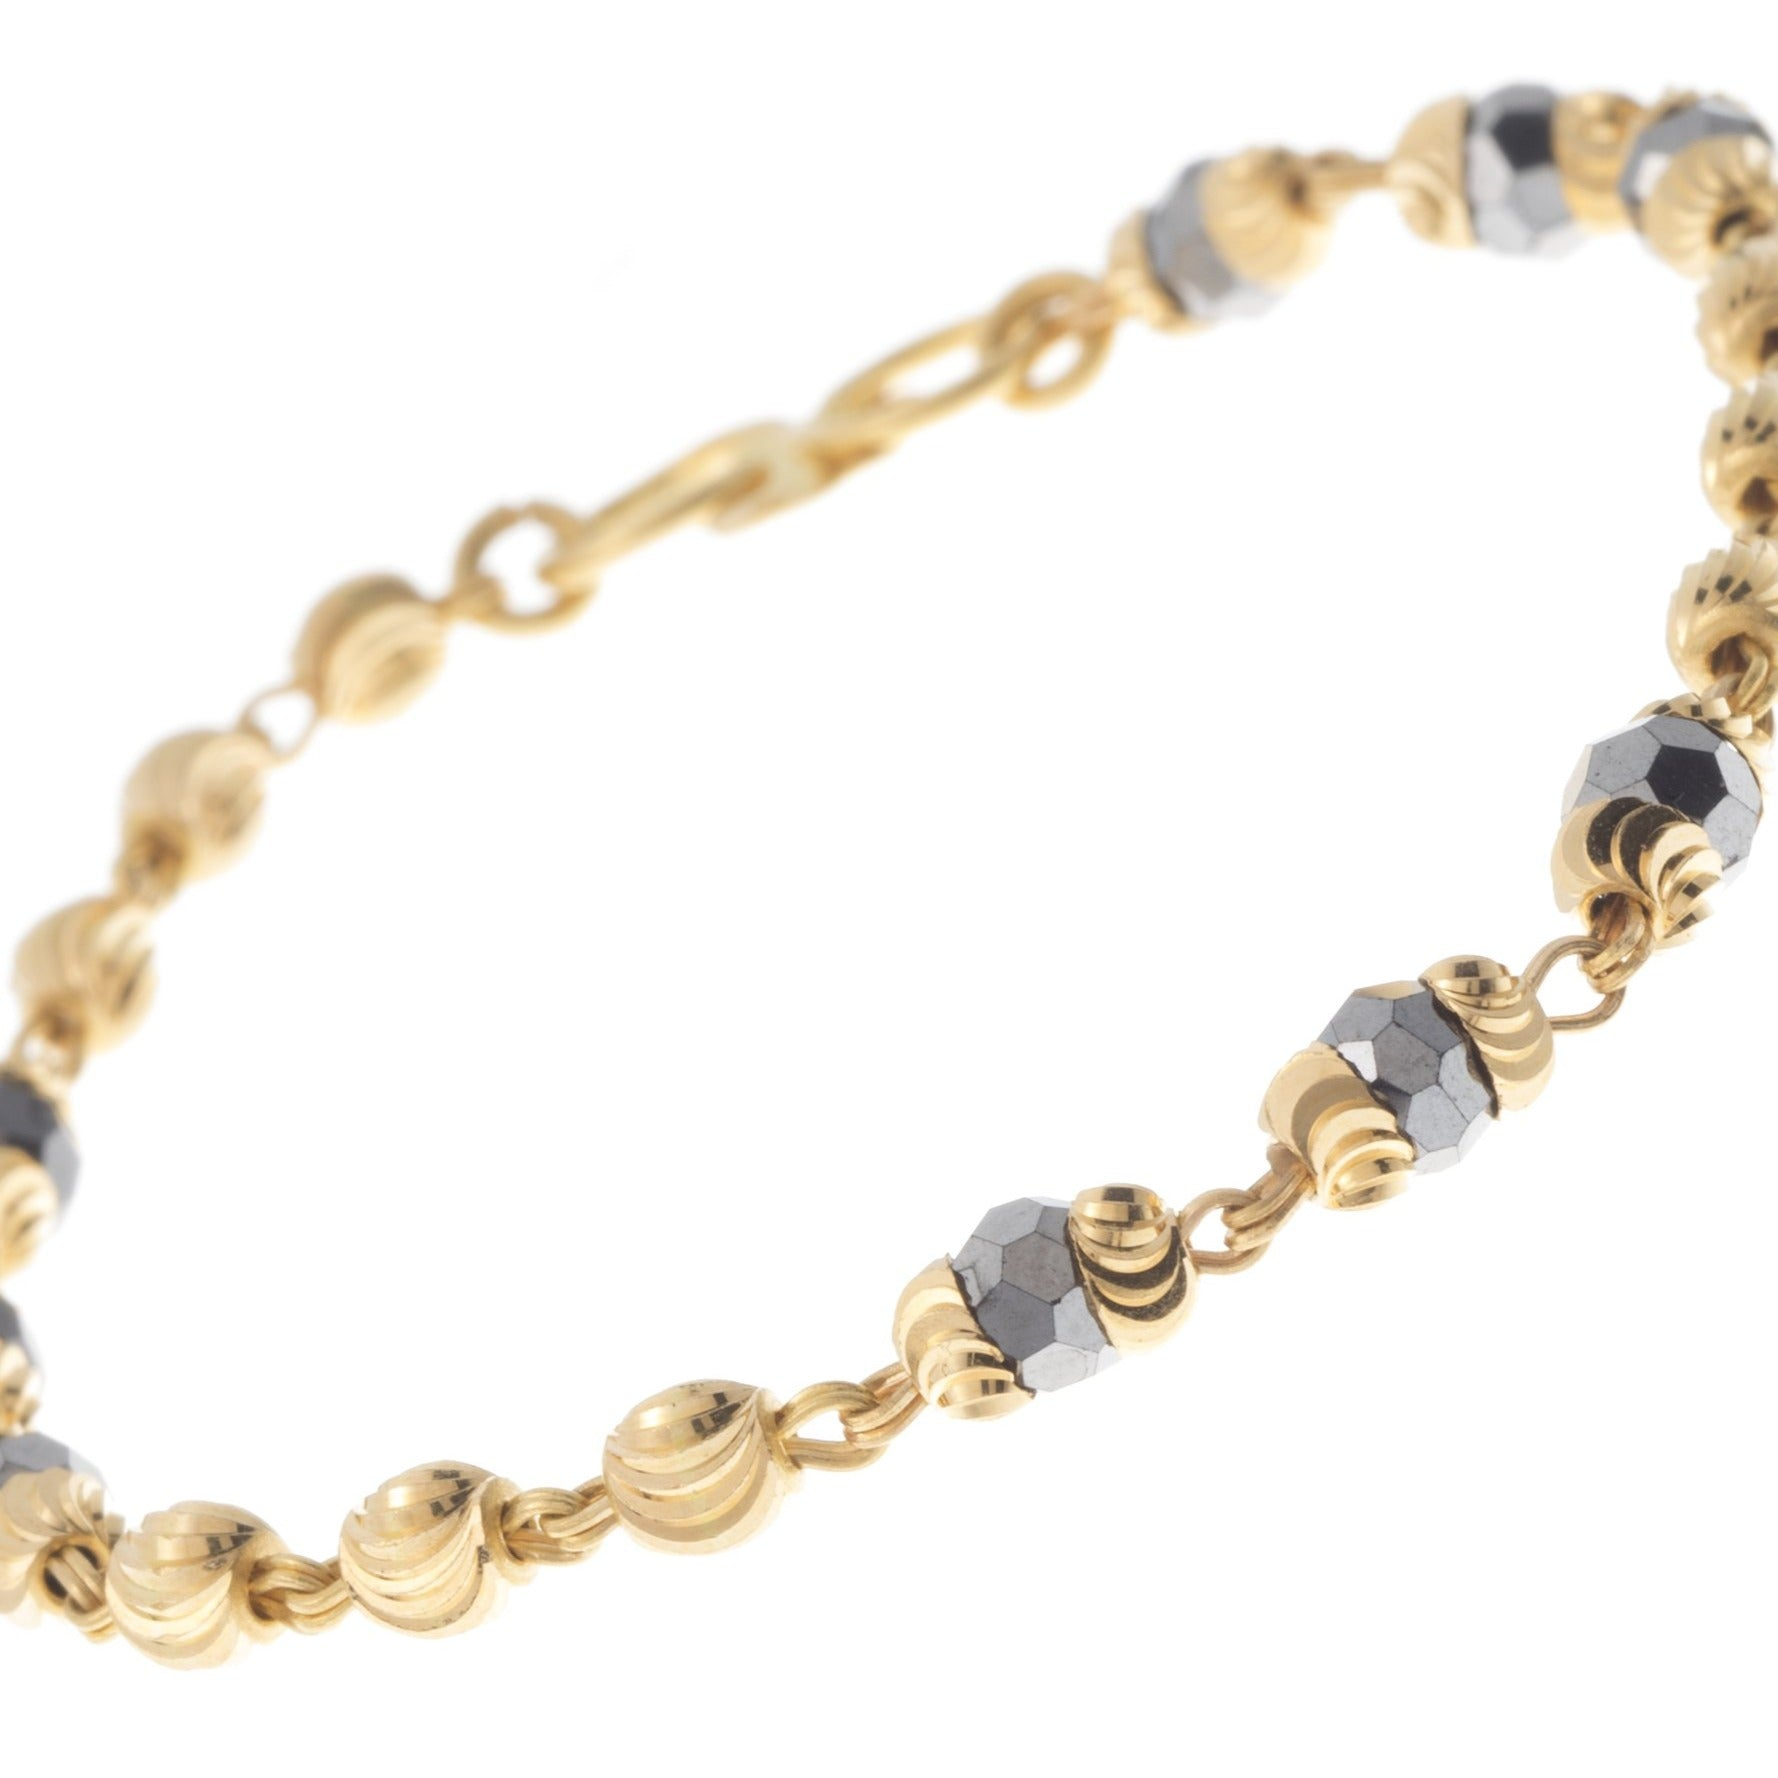 22ct Gold Children's Bracelets with Rhodium and Diamond Cut Design CBR-7380